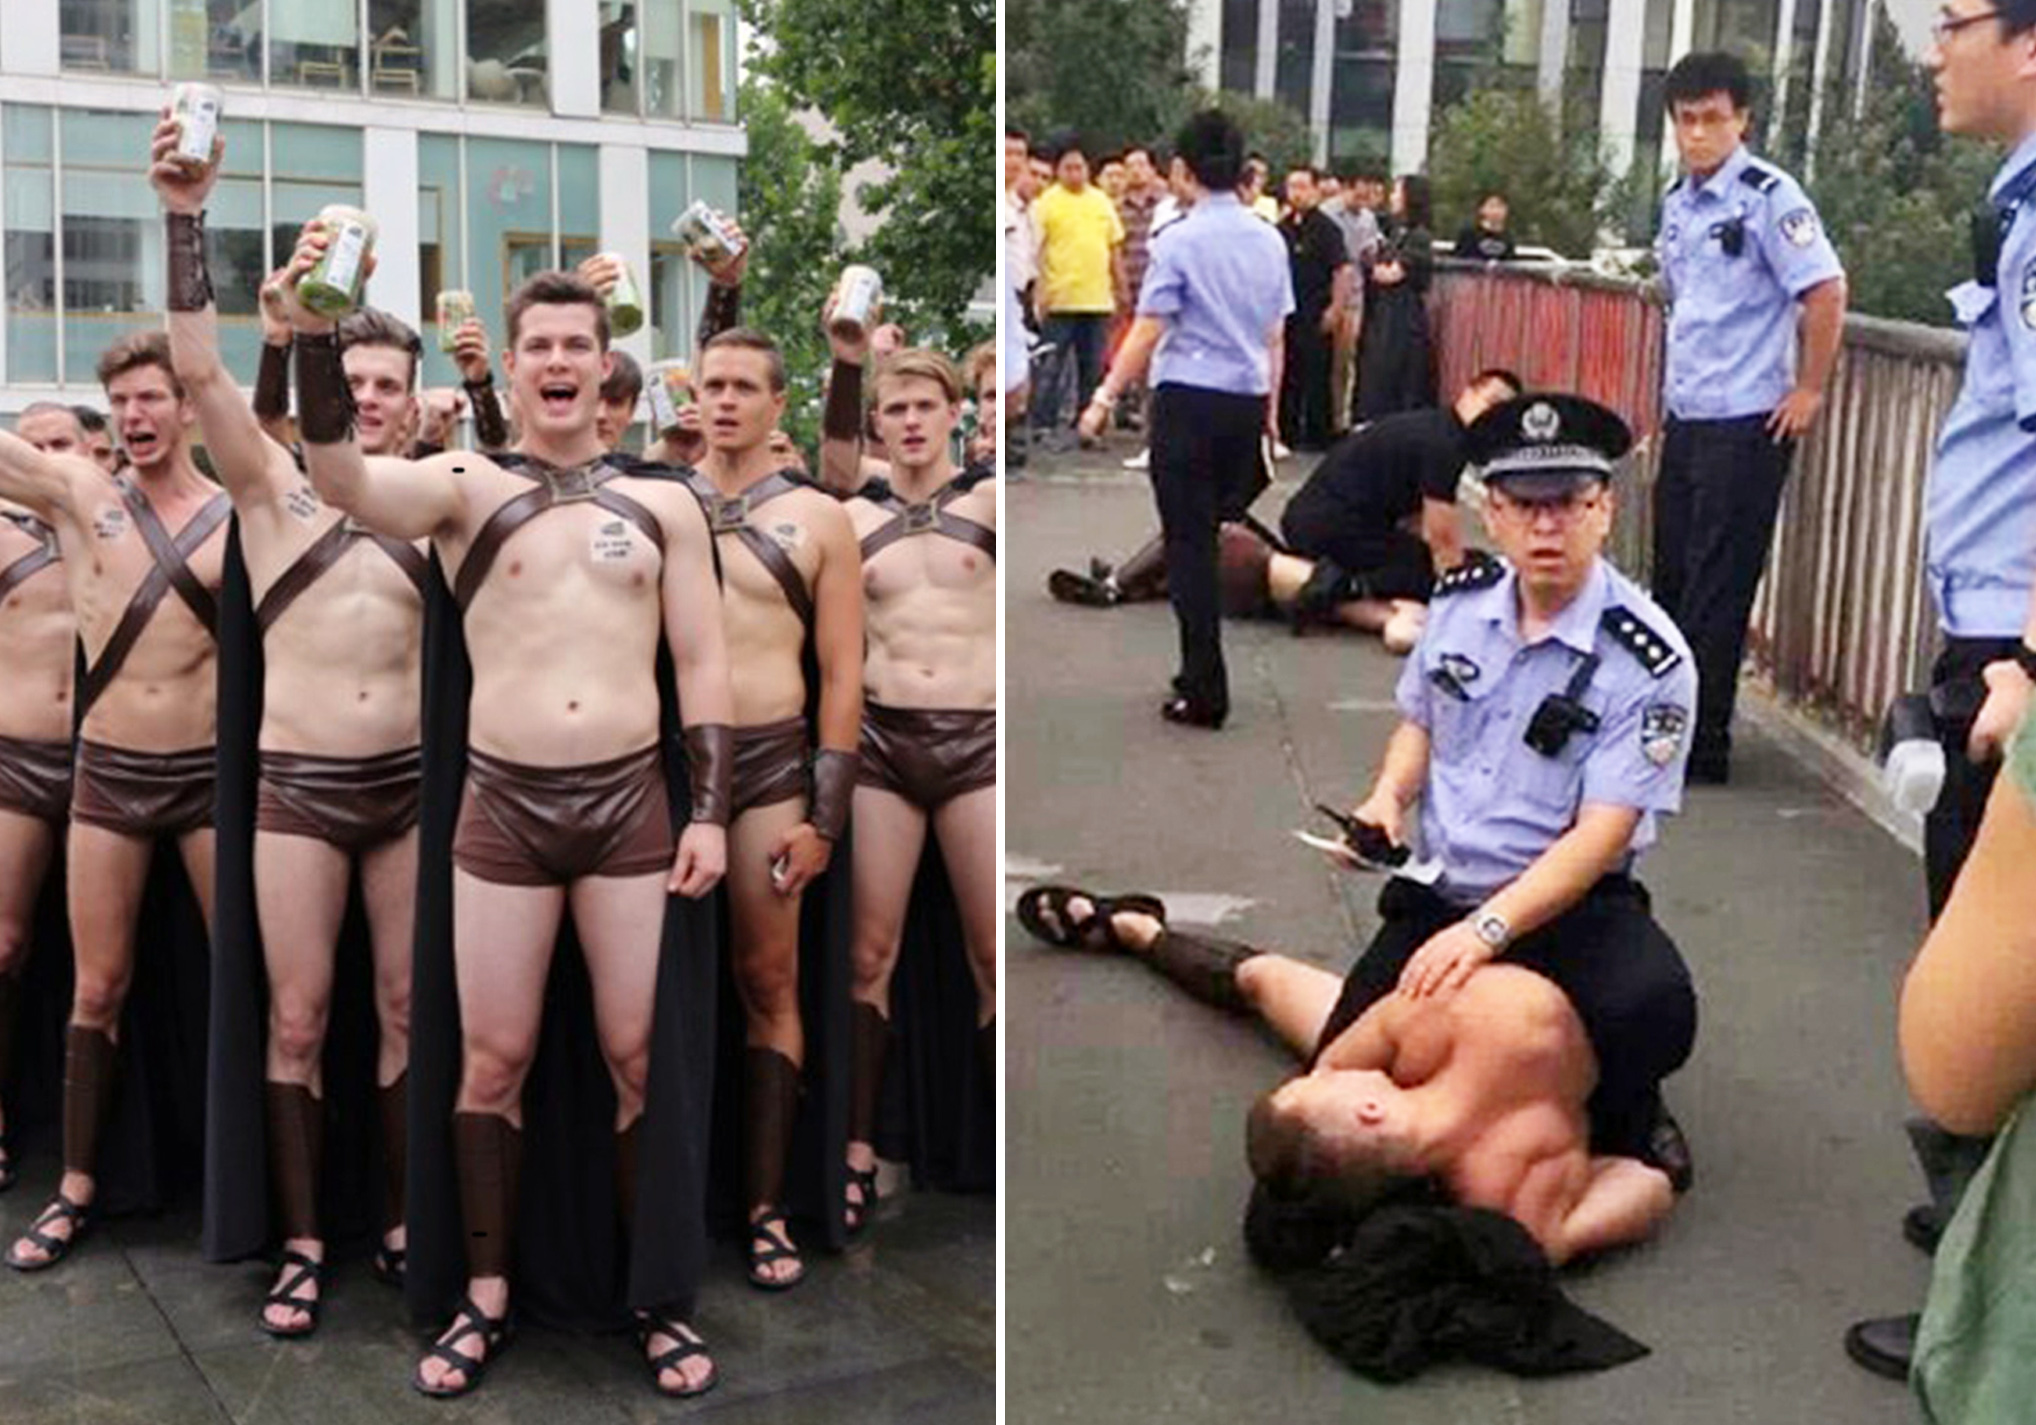 Half-naked Spartan advertising stunt backfires when police start arresting everybody